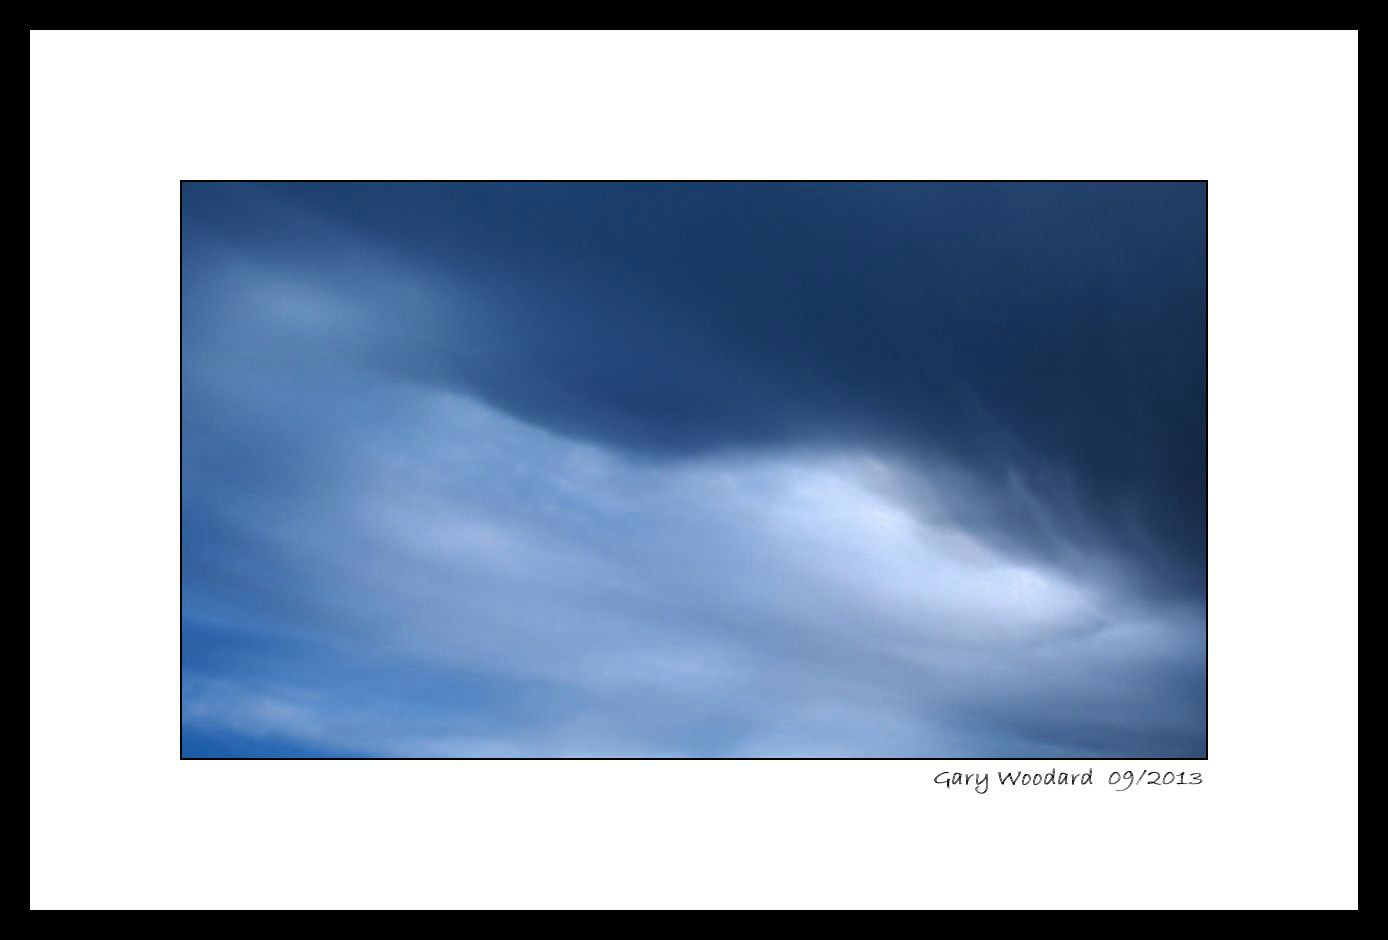 clouds no author woodard gary